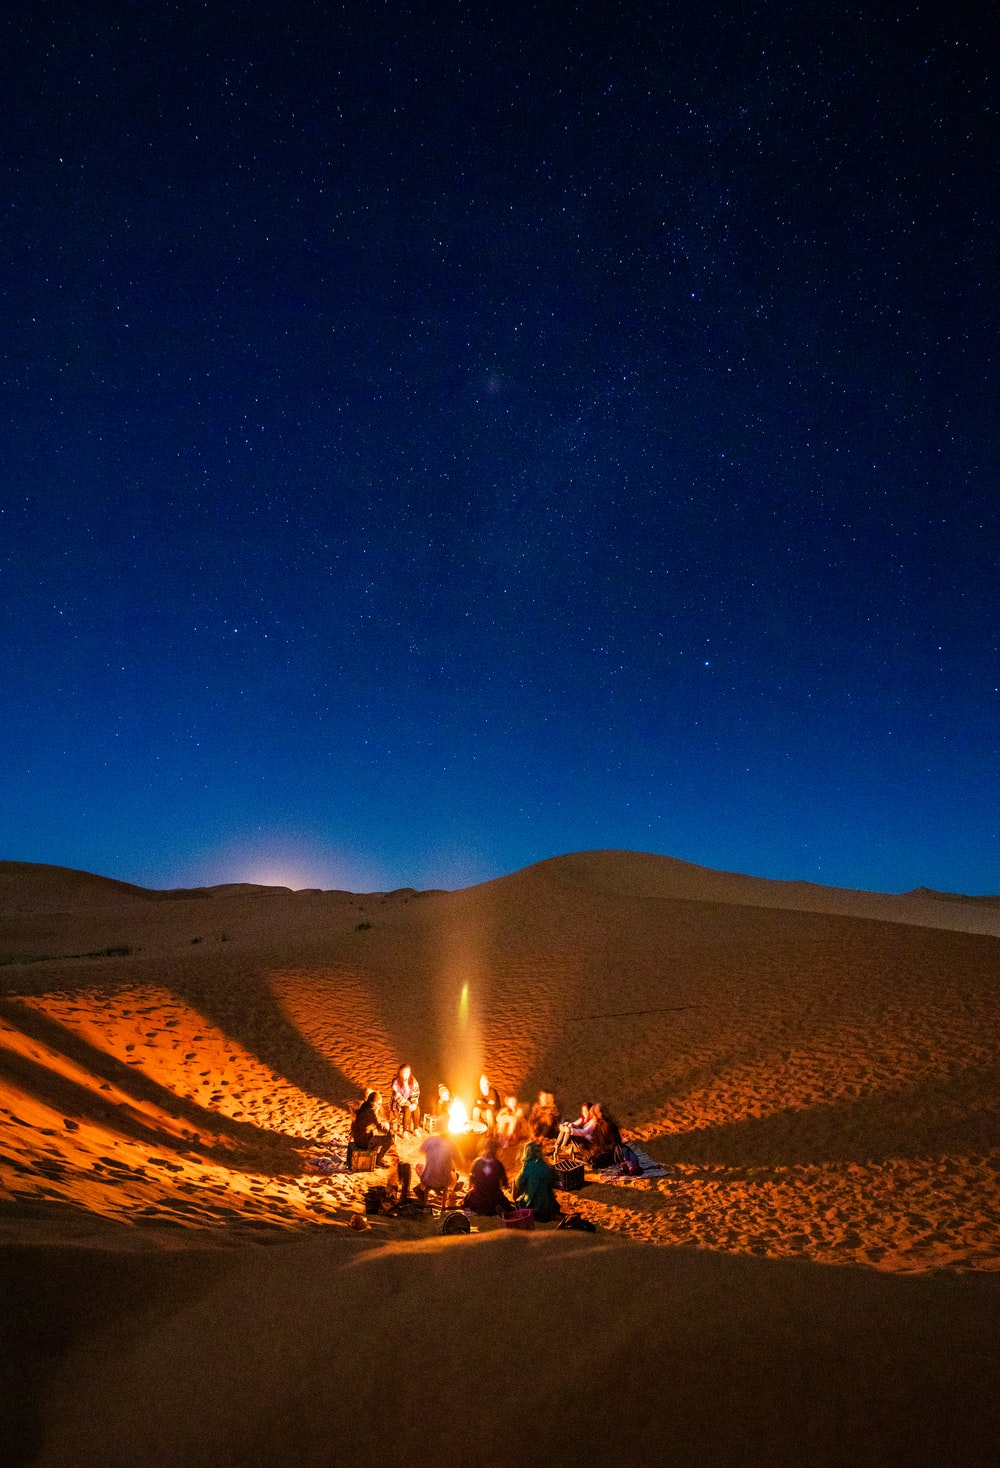 people sitting near bonfire during night time